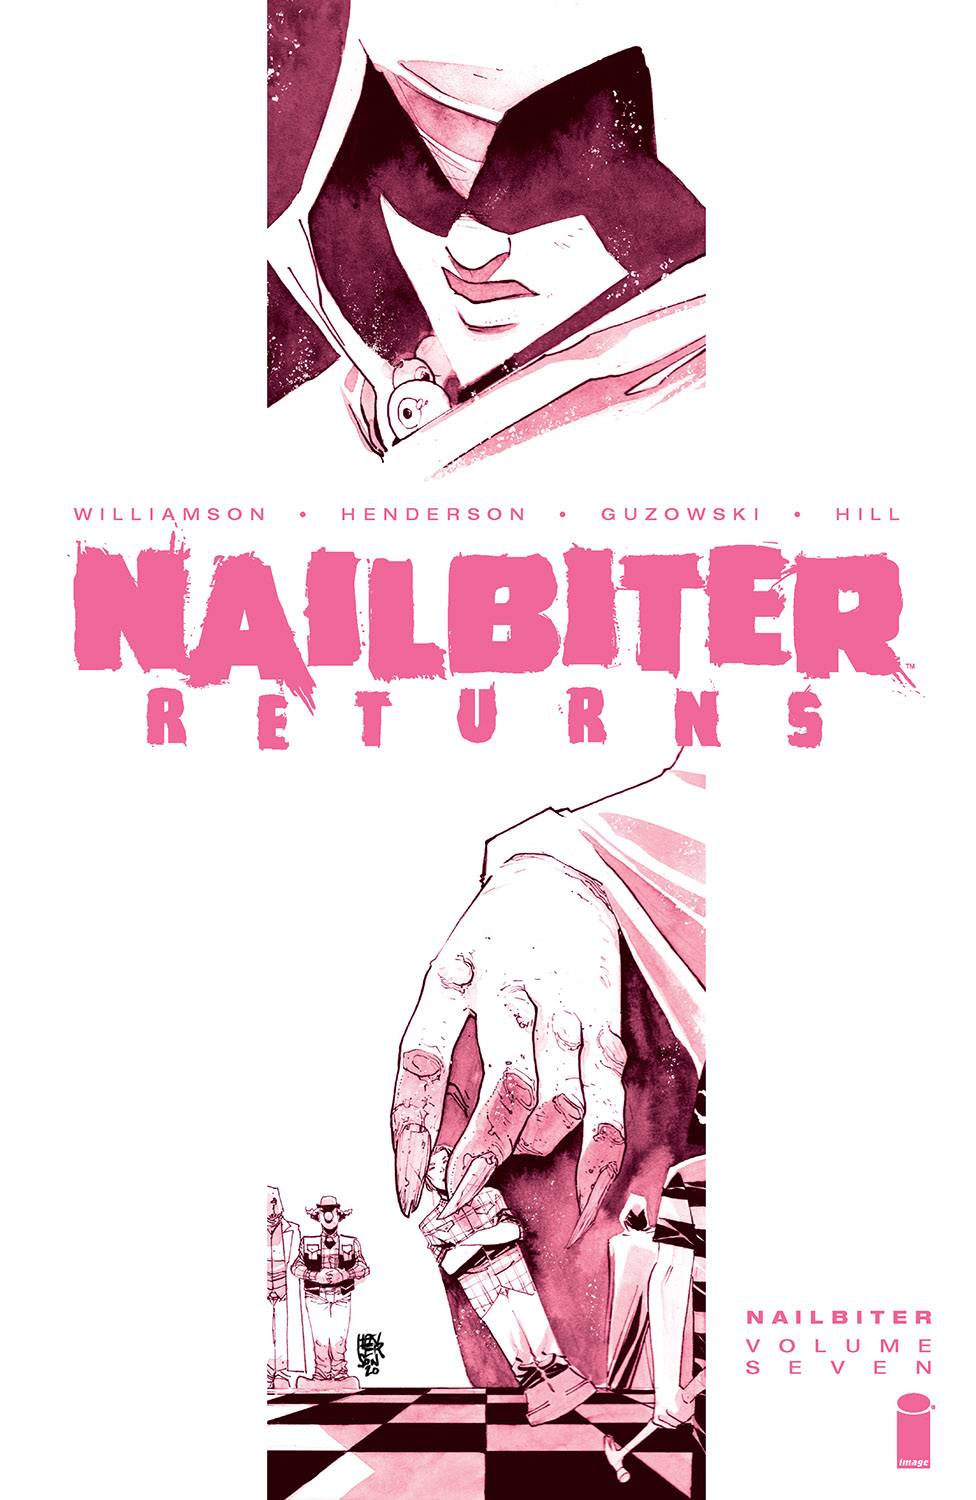 NAILBITER TP VOL 07 NAILBITER RETURNS (AUG200095) (MR)